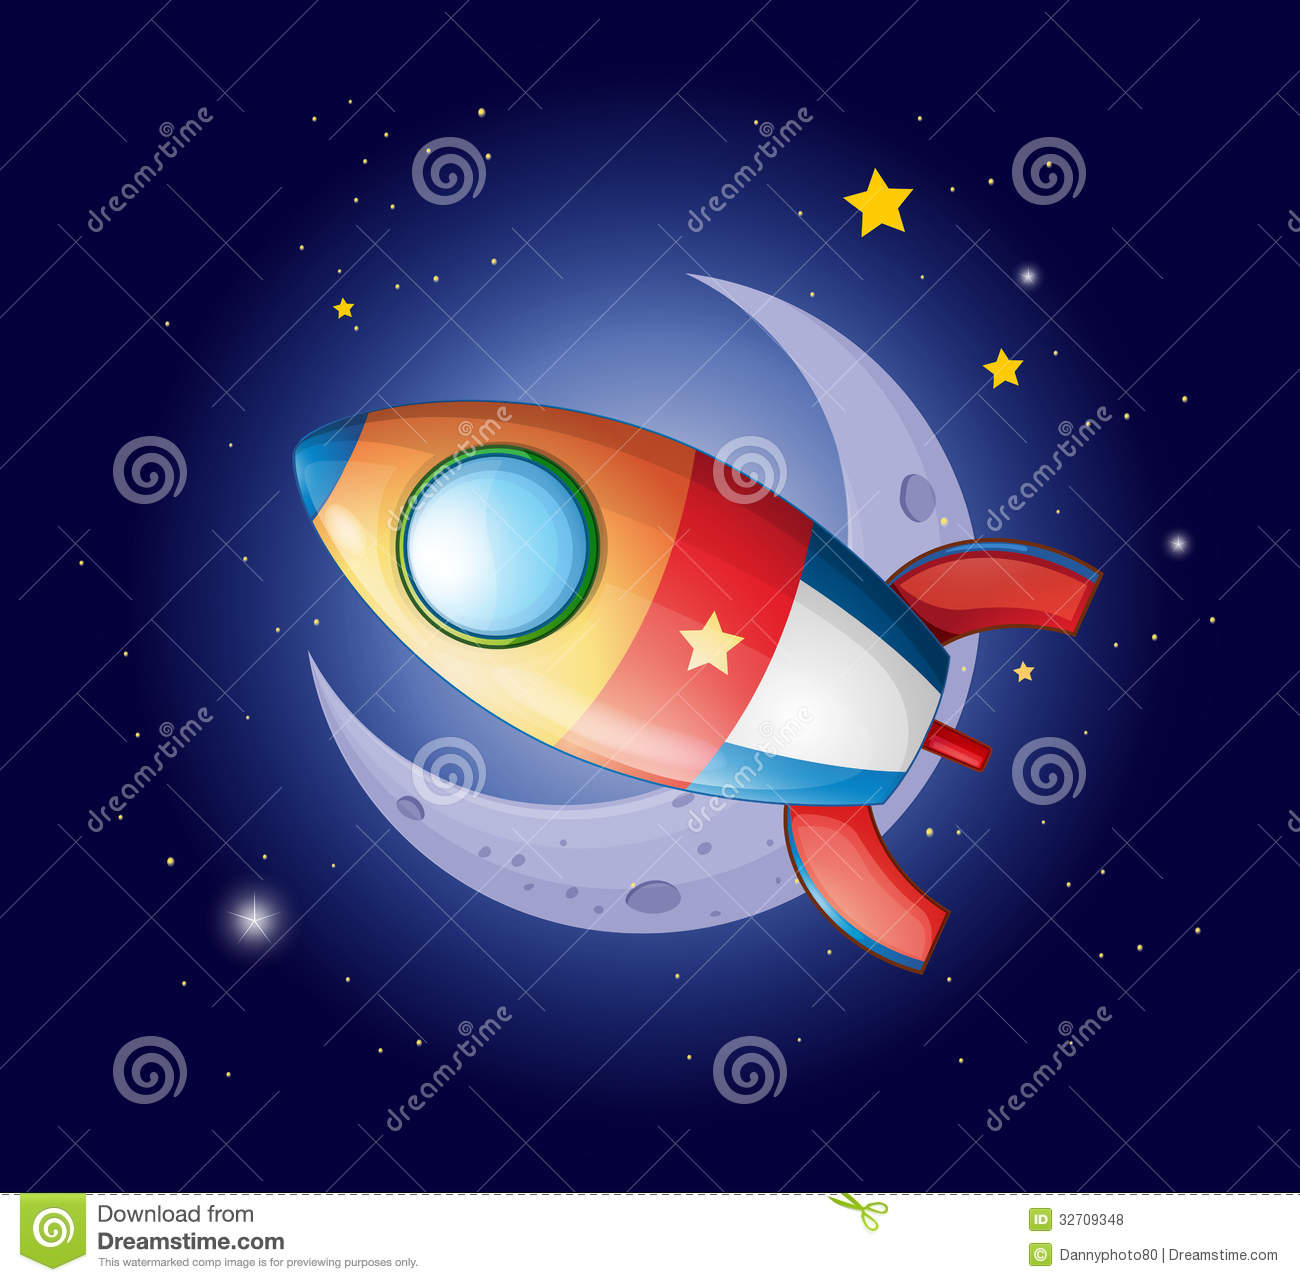 Rockets To The Moon: A Rocket Going To The Moon Royalty Free Stock Photos